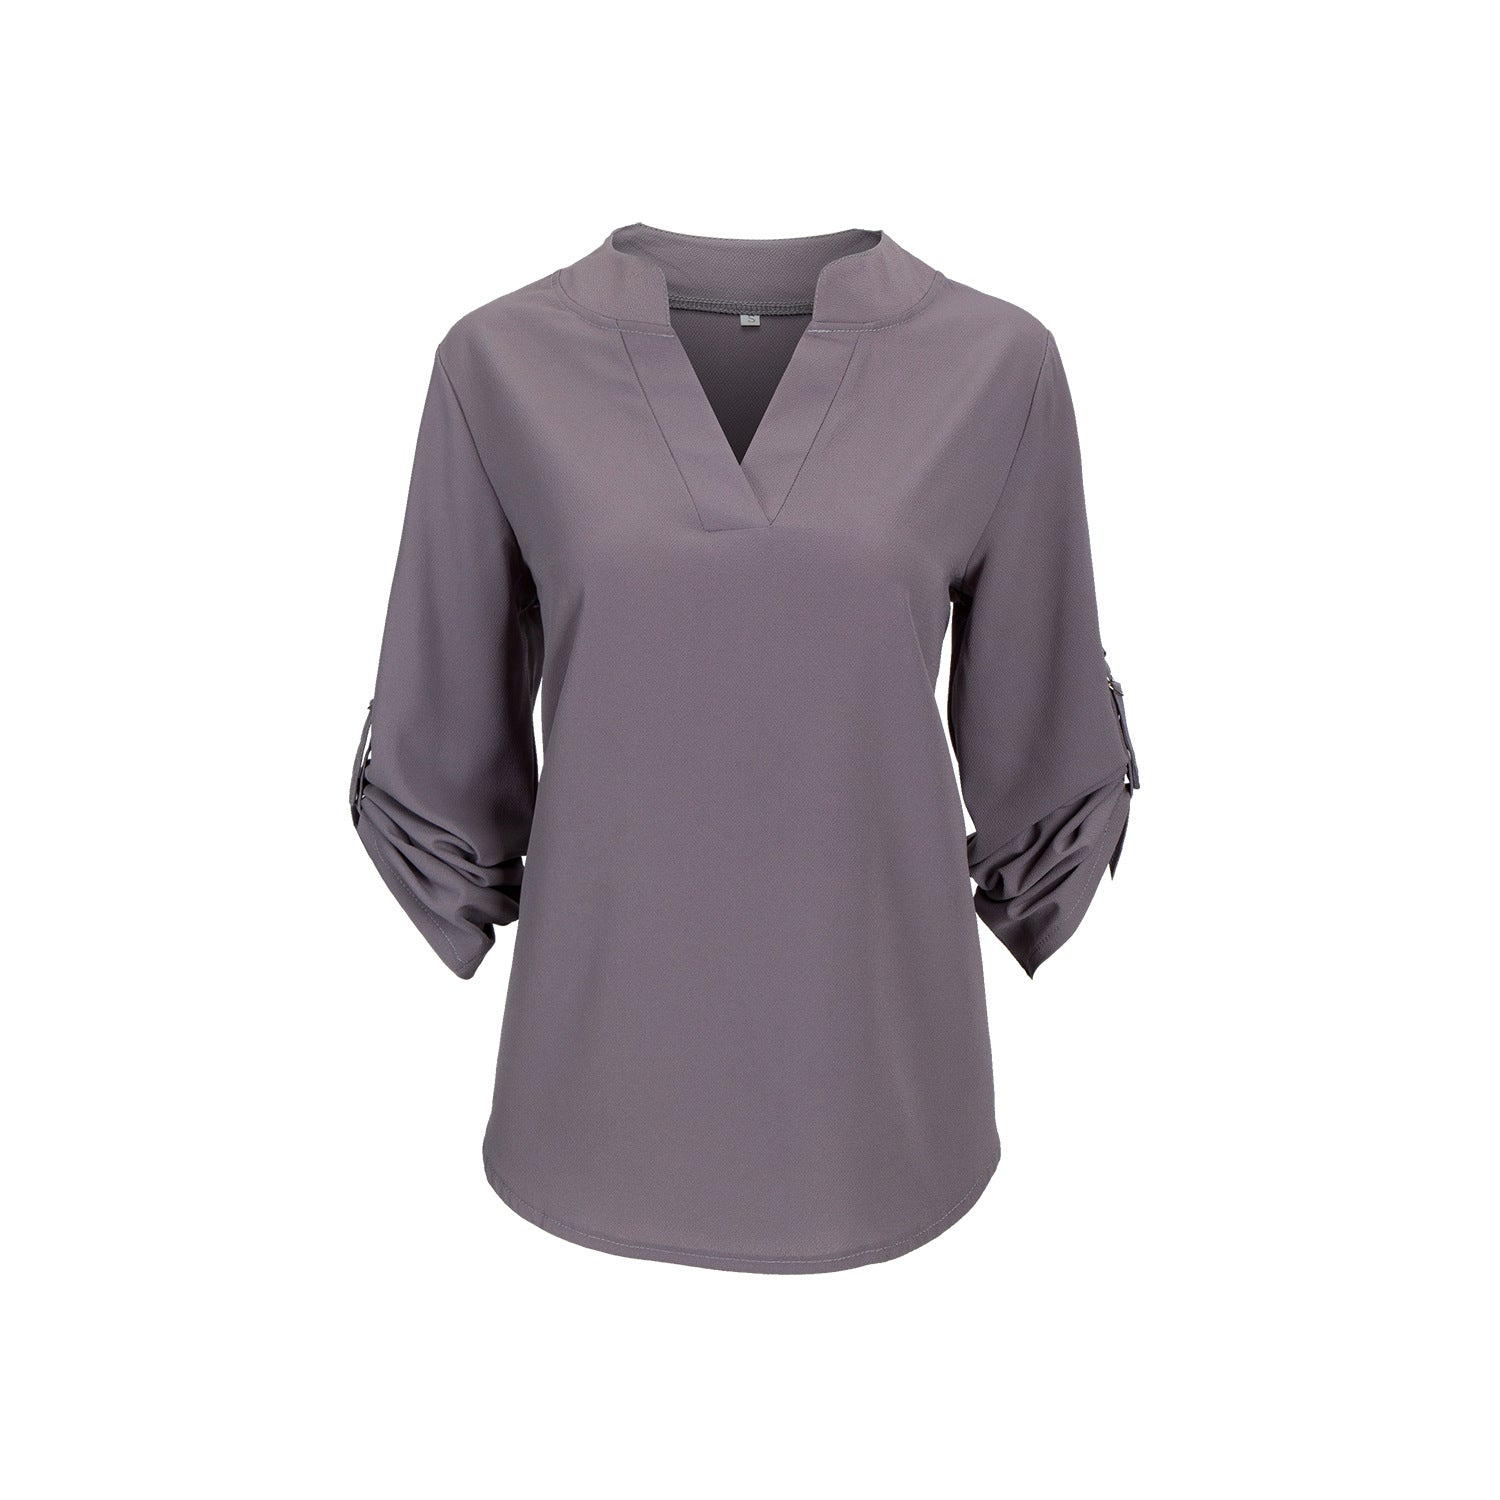 V-neck Chiffon Blouses 3/4 Sleeve Shirt